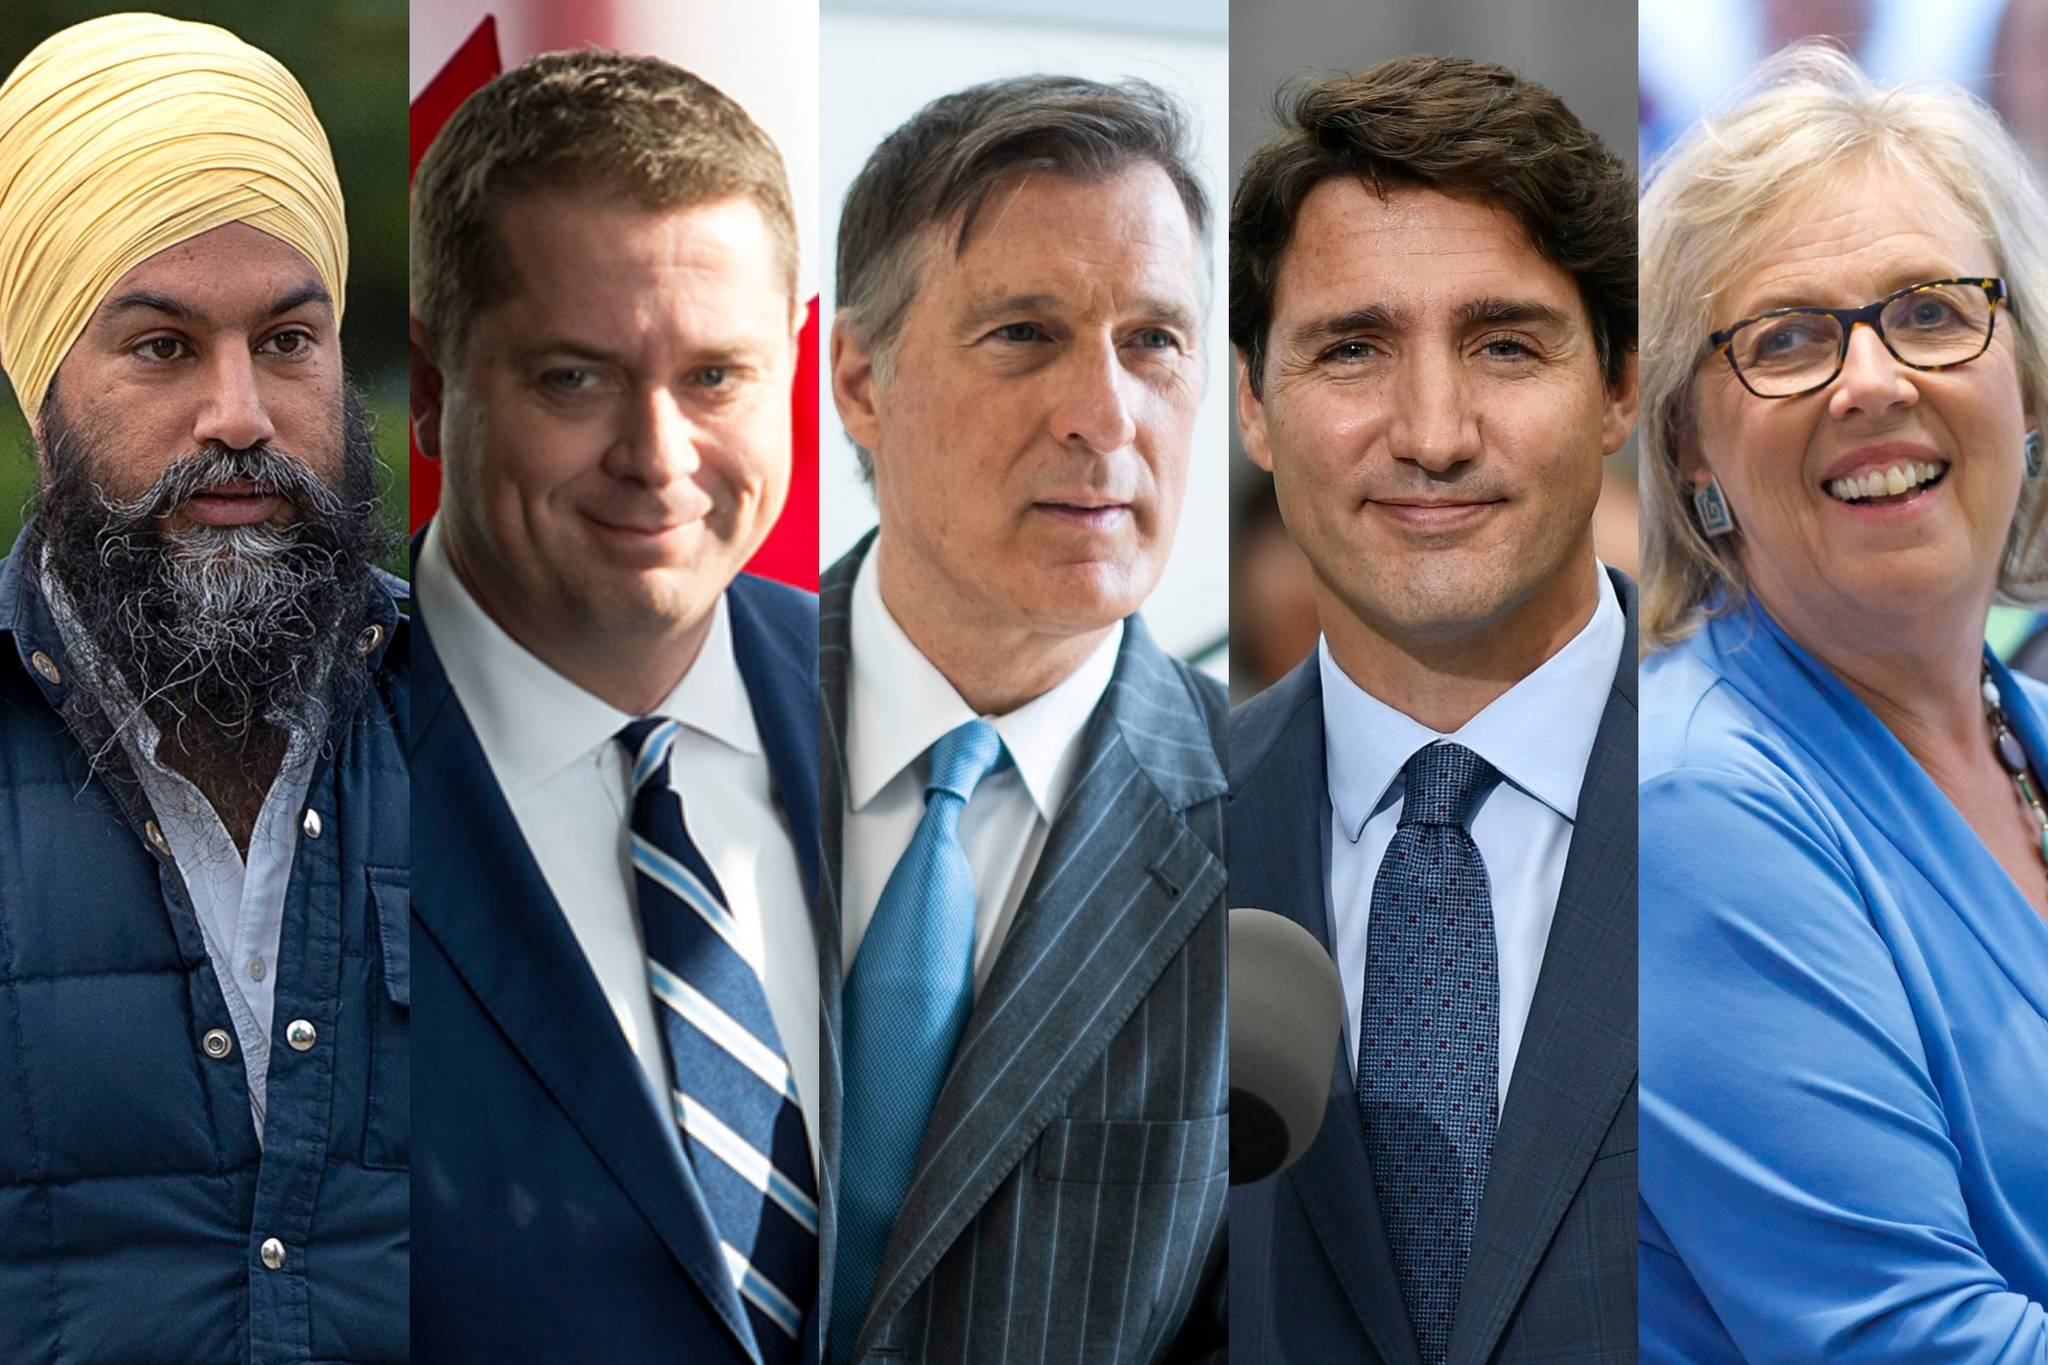 All five party leaders in the upcoming 2019 federal election. (The Canadian Press photos)